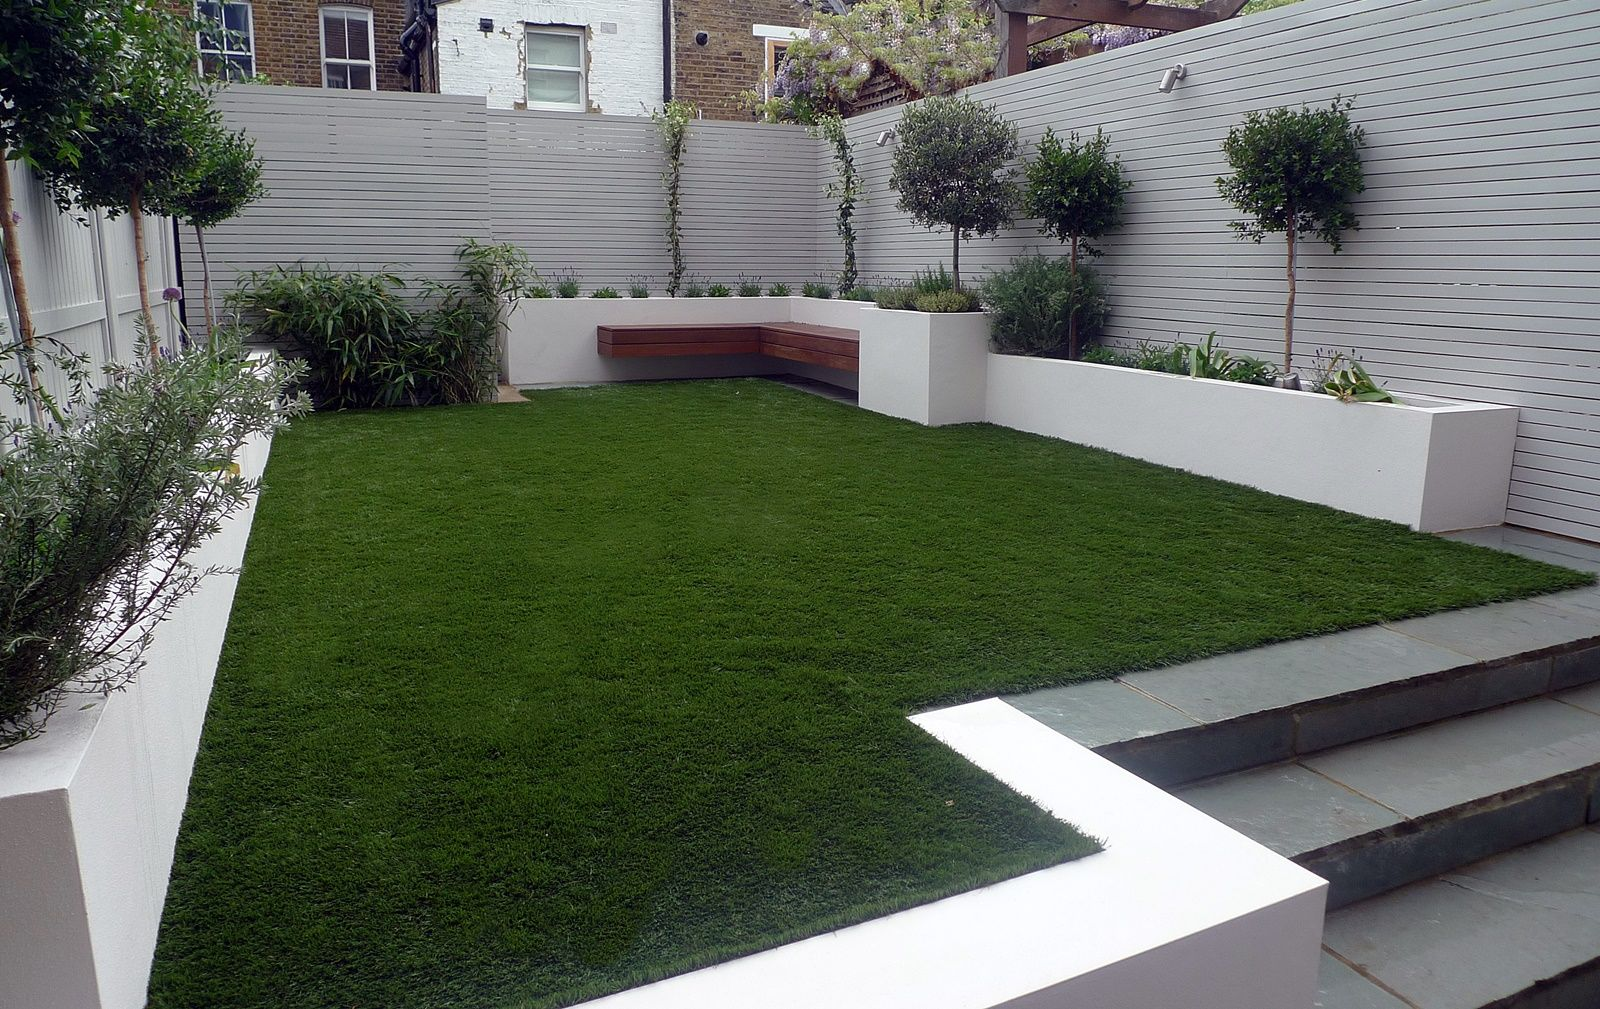 Painted Trellis Ideas Part - 17: Raised-beds-hardwood-slatted-screen-privacy-trellis-fence-painted-grey-artificial-grass-balham-clapham-dulwich-peckham-battersea-wimbledon.jpg  (160u2026